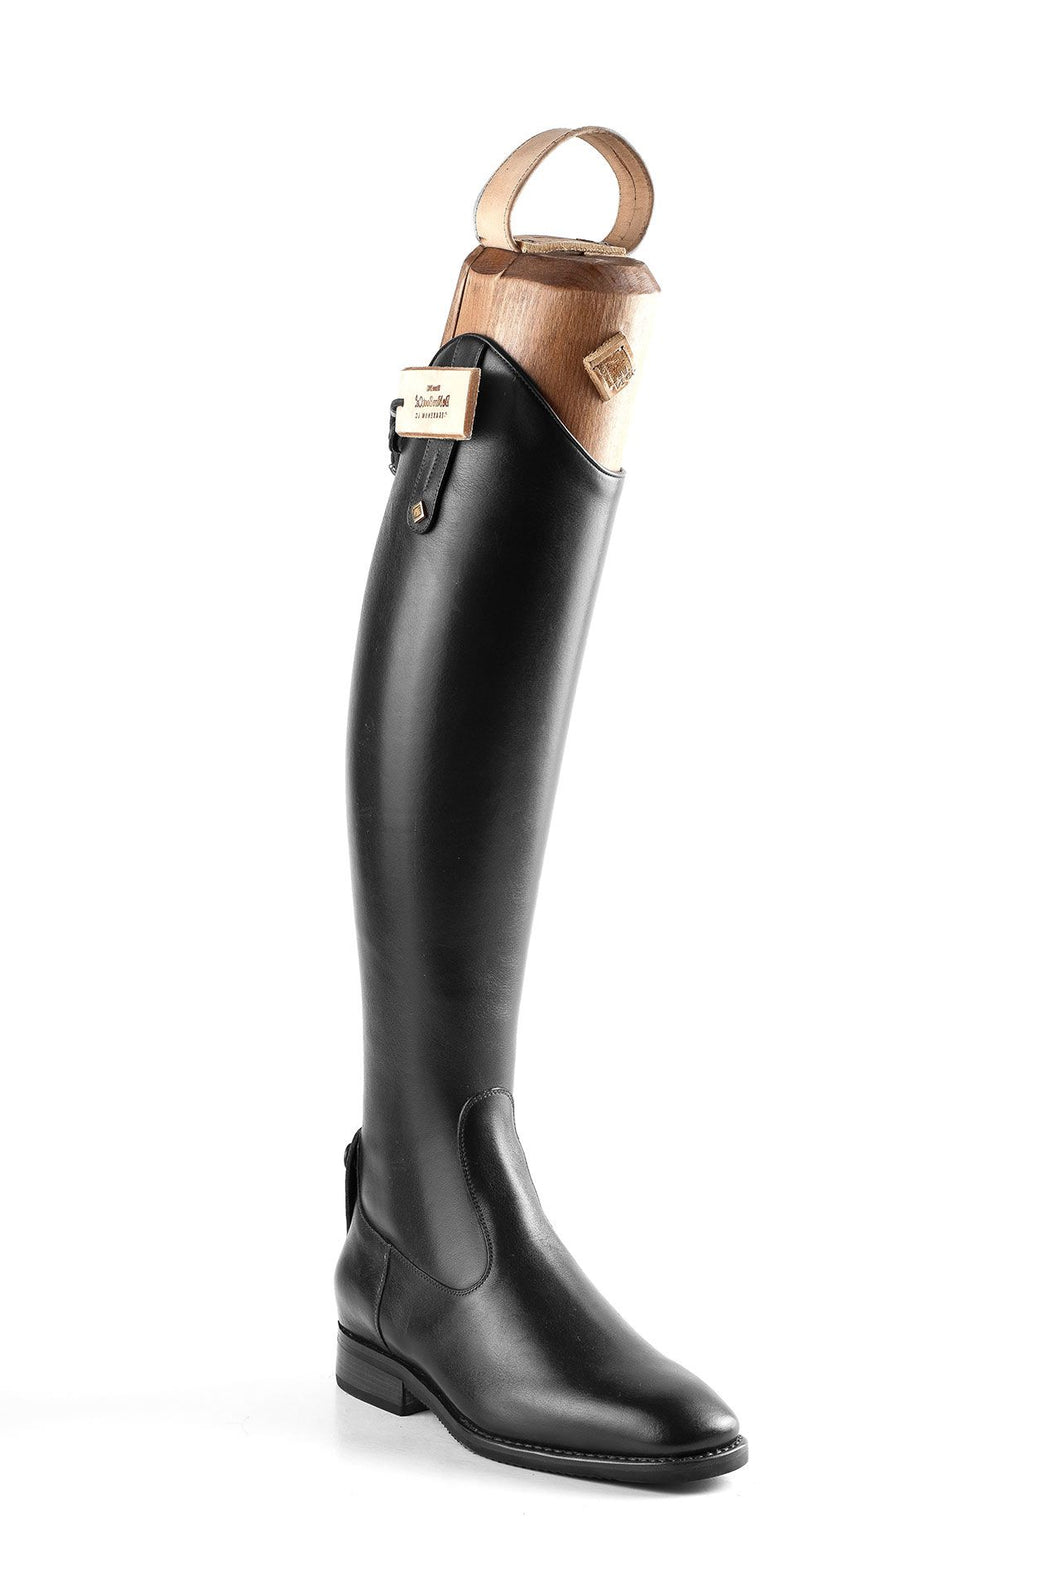 Tricolore S3311 UnLaced Dress Boot Black Grainy Leather